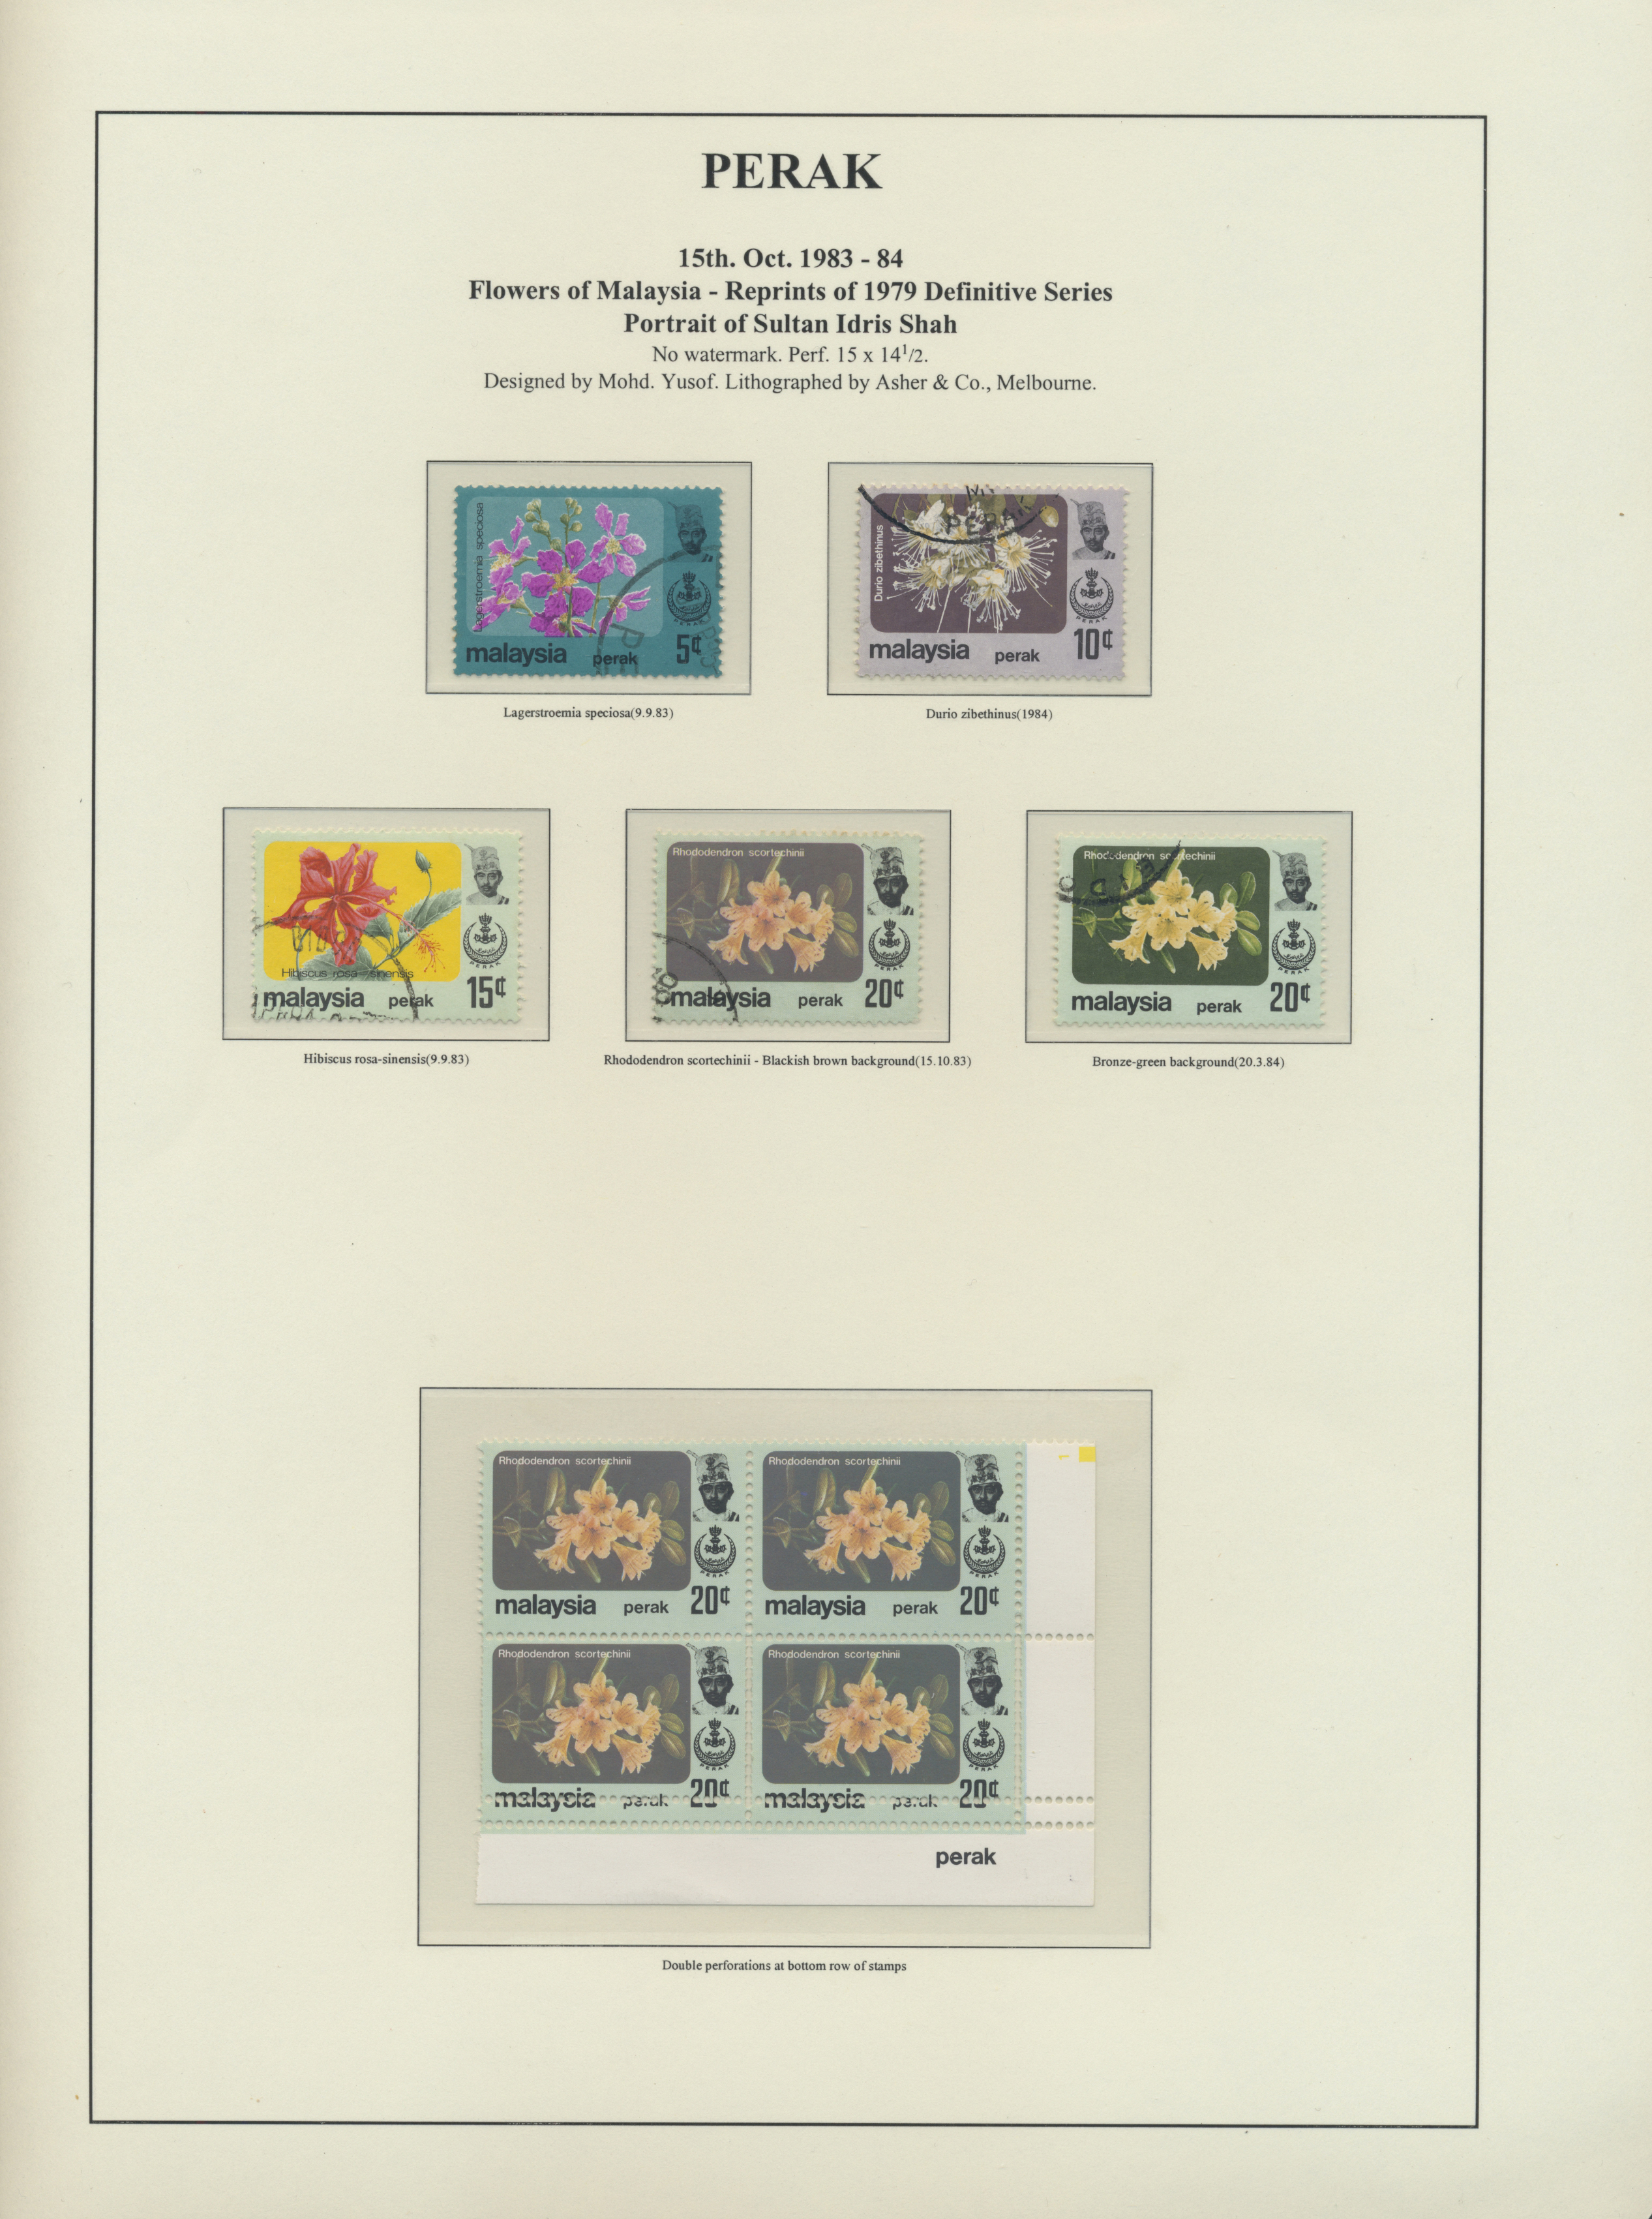 Lot 34575 - Malaiische Staaten - Perak  -  Auktionshaus Christoph Gärtner GmbH & Co. KG Collections Germany,  Collections Supplement, Surprise boxes #39 Day 7